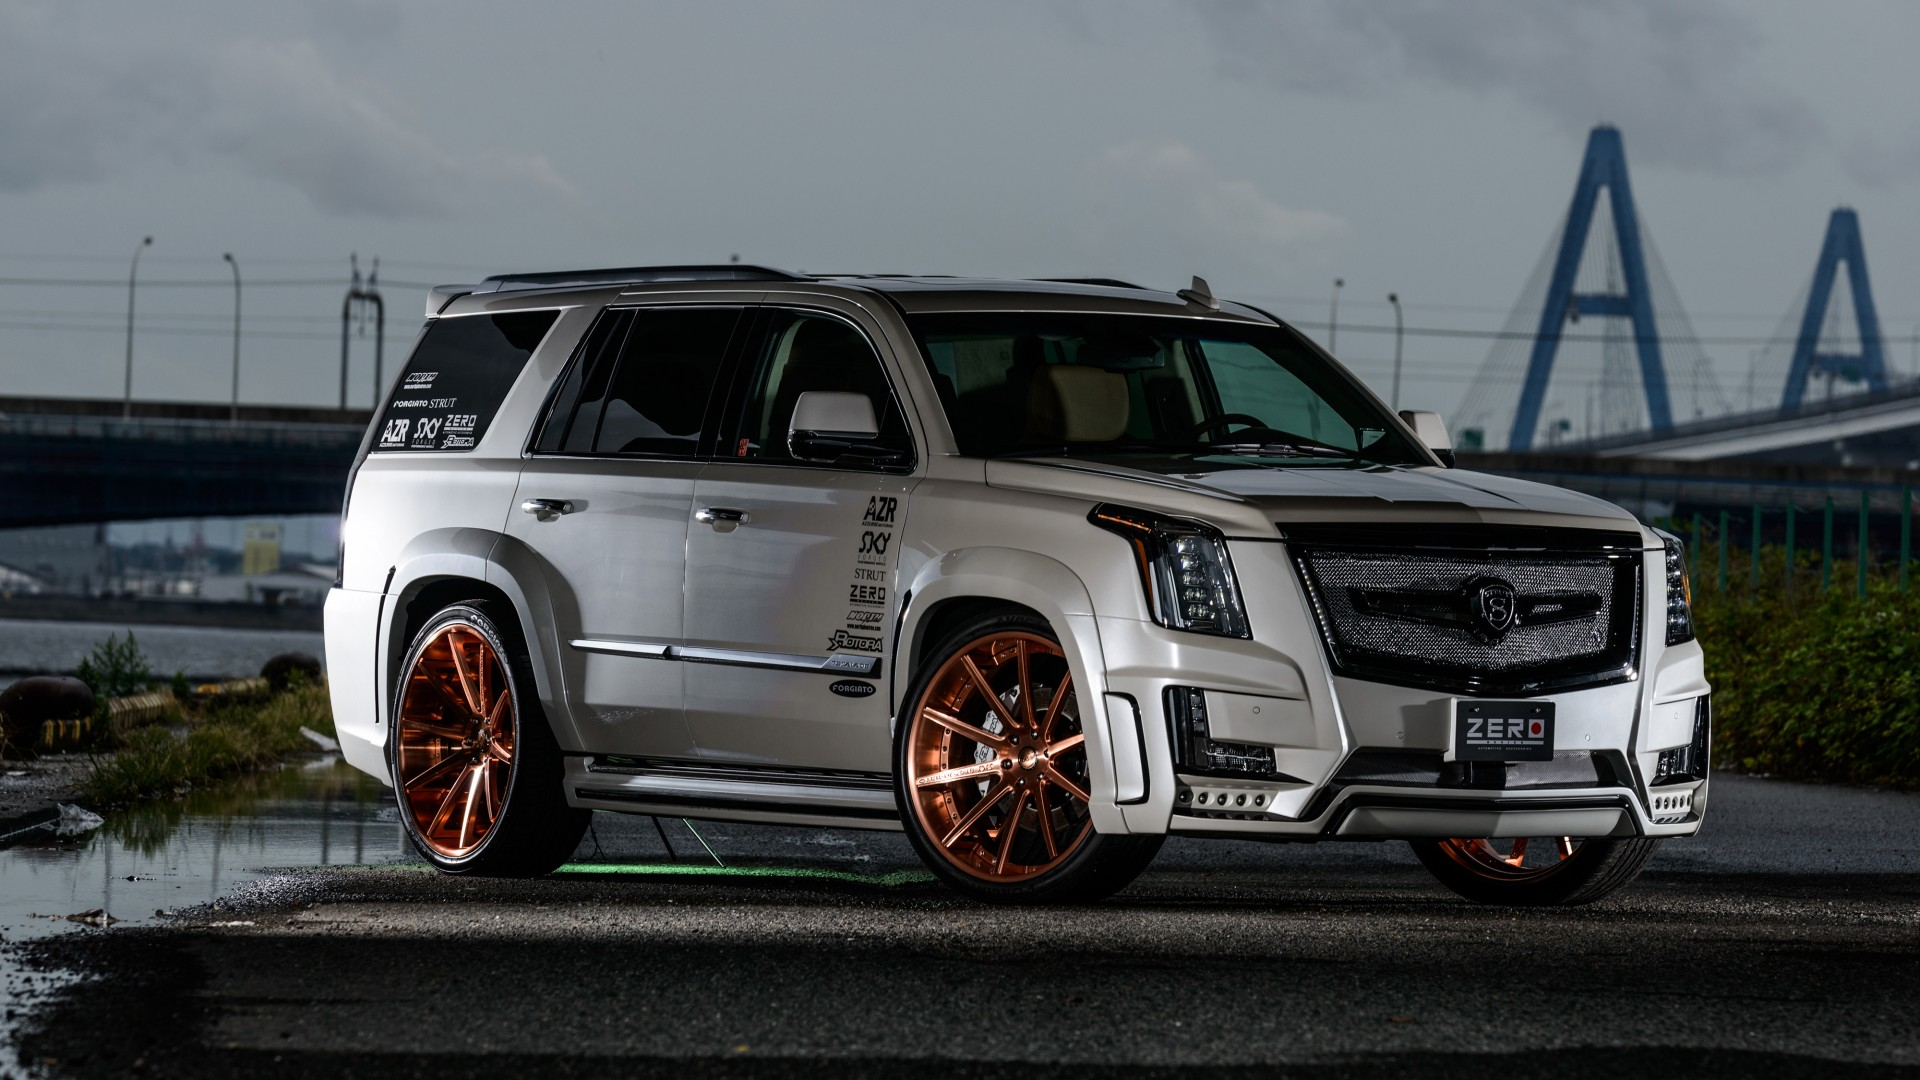 Zero Design Cadillac Escalade 2019 4K Wallpaper | HD Car Wallpapers | ID #12488